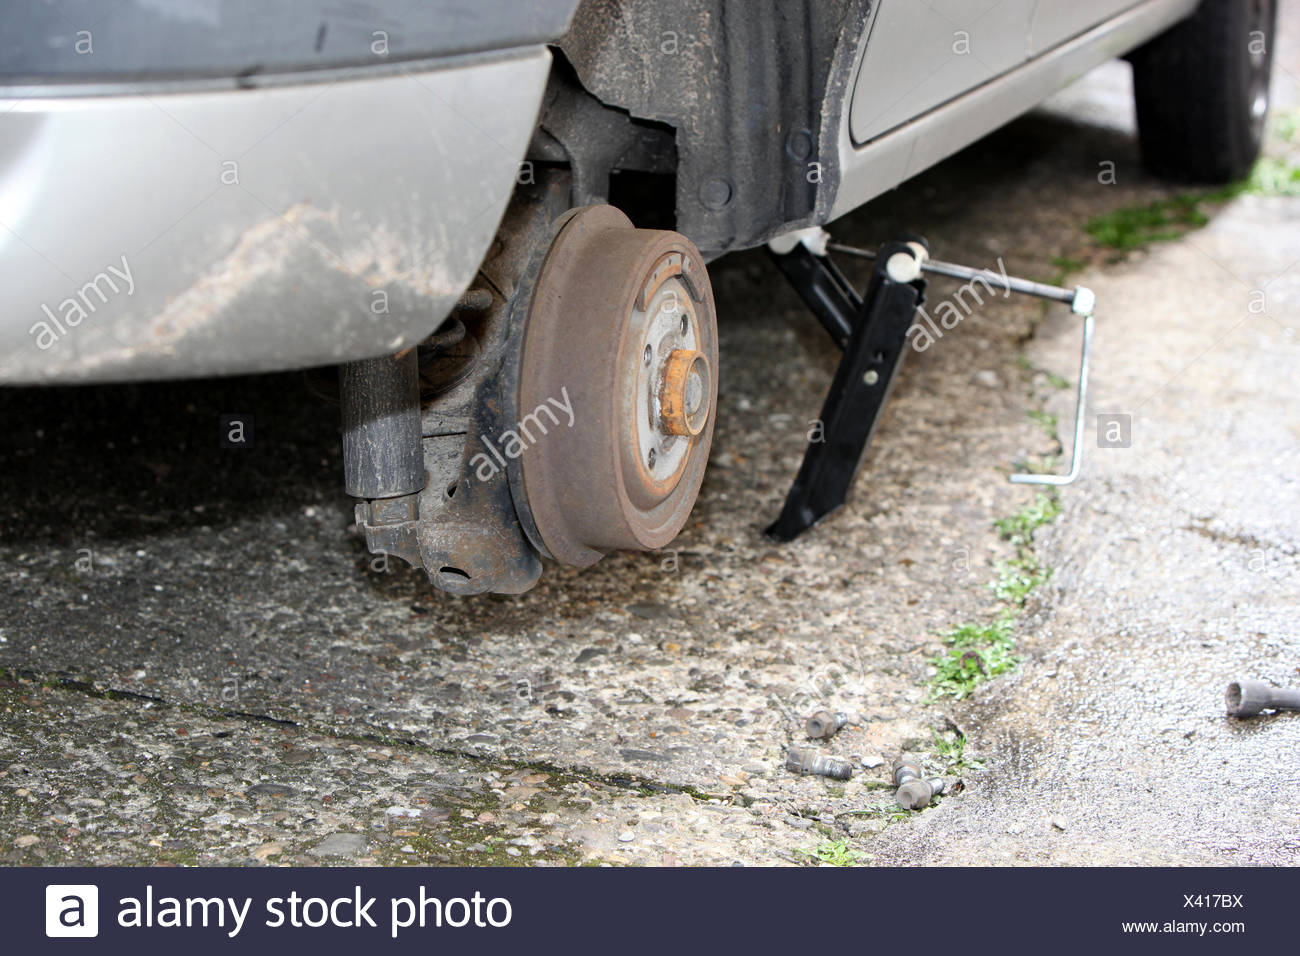 A car tire is changed - Stock Image